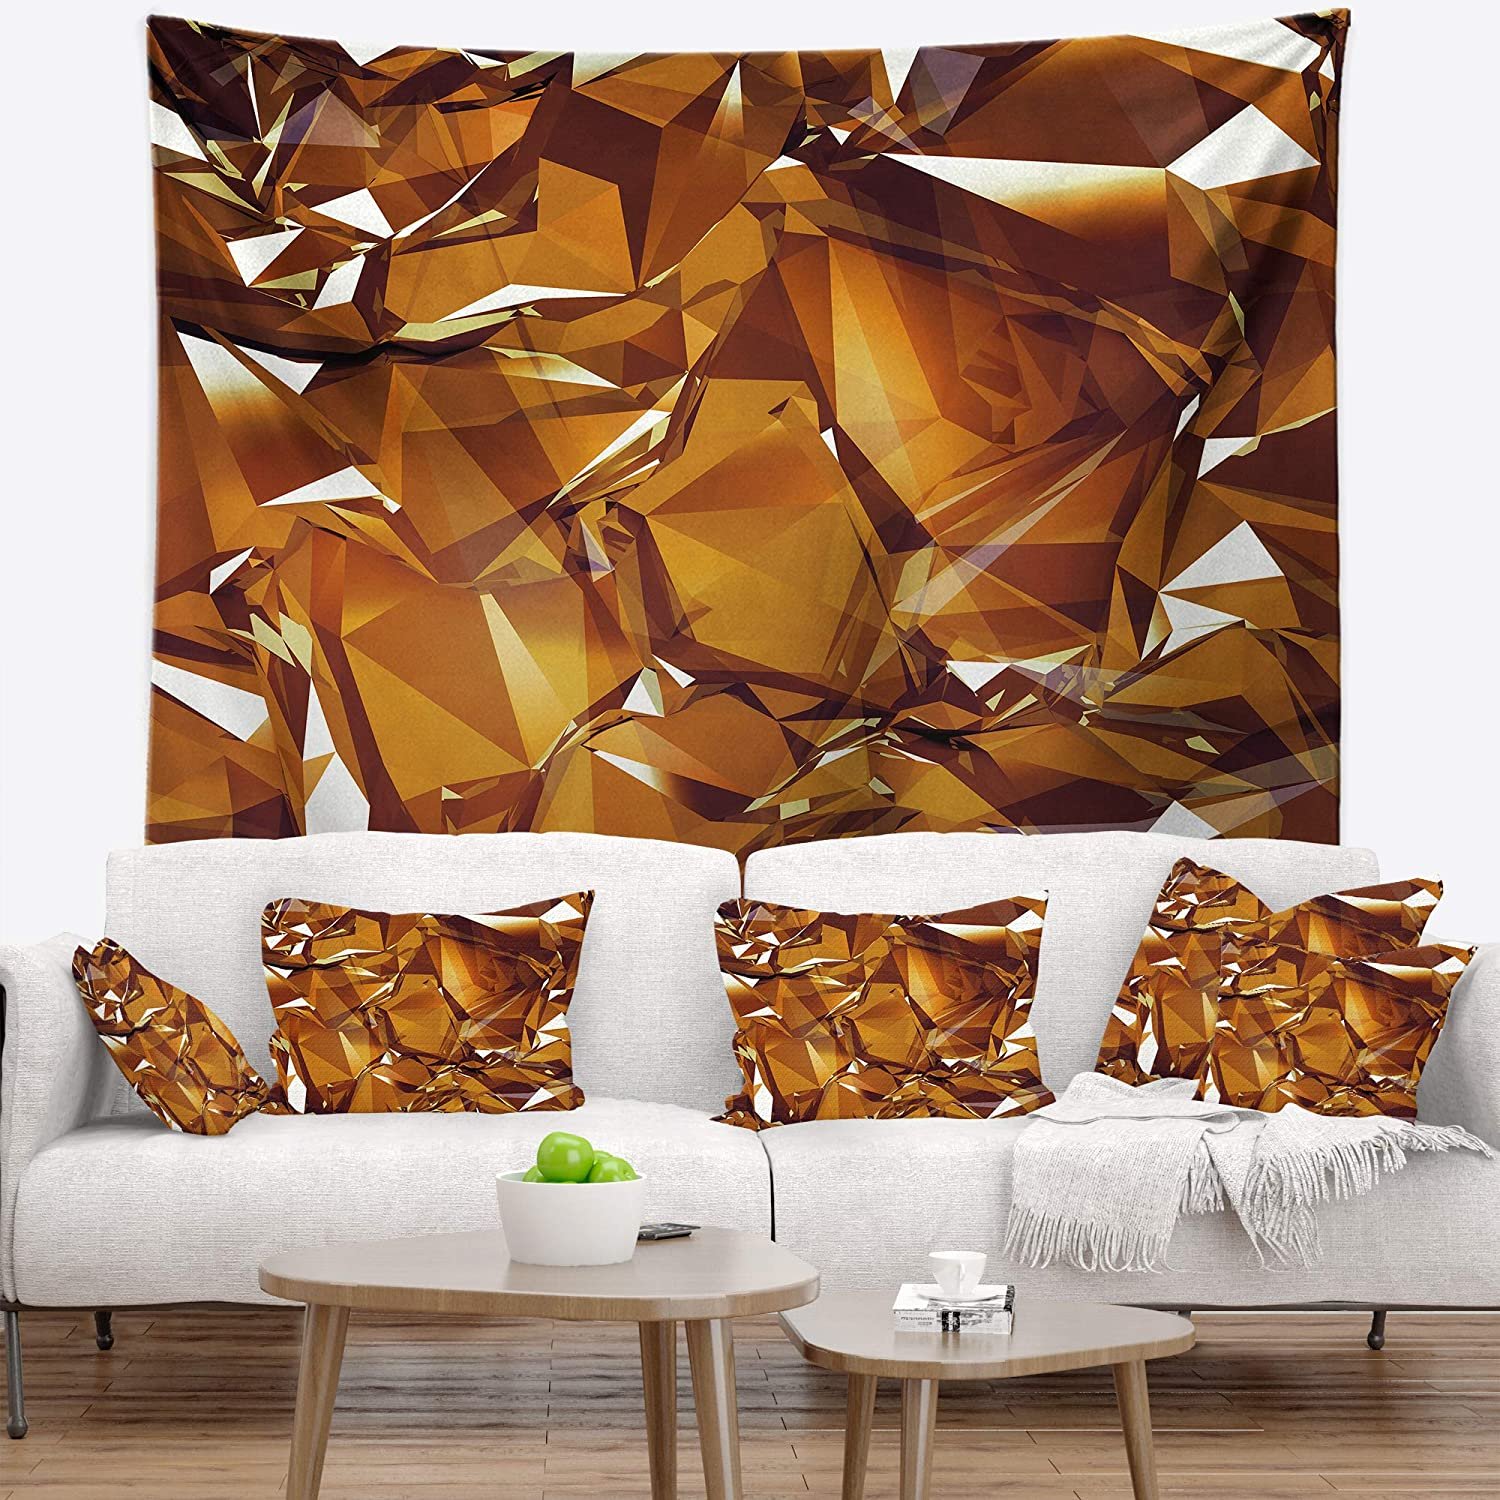 Designart TAP157413932 '3D gold Crystal Background' Abstract Tapestry Blanket Décor Wall Art for Home and Office, Medium  39 in. x 32 in.